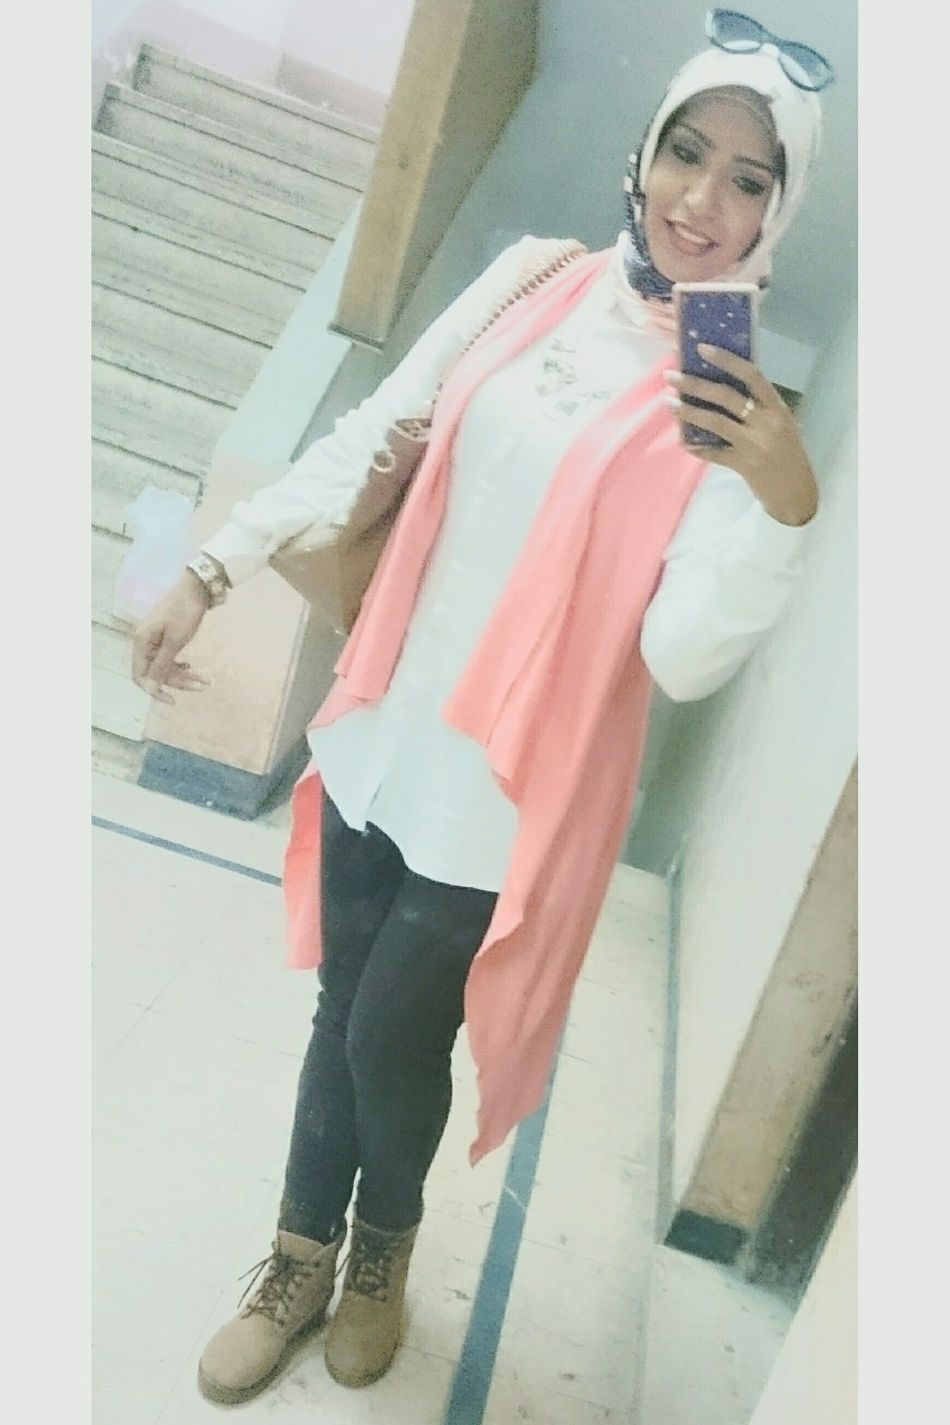 Semi-classic Full Length Unique Elégance Fation Females Business Finance And Industry Selfie ✌ Beautiful Girl That's Me Cheerful Happiness Smiling Beauty Young Adult Simple Beauty Beautiful ♥ Hijabfashion Photo Shoot Phoneography Photo Of The Day Photo PicturePerfect Hijab Simply Me ❤